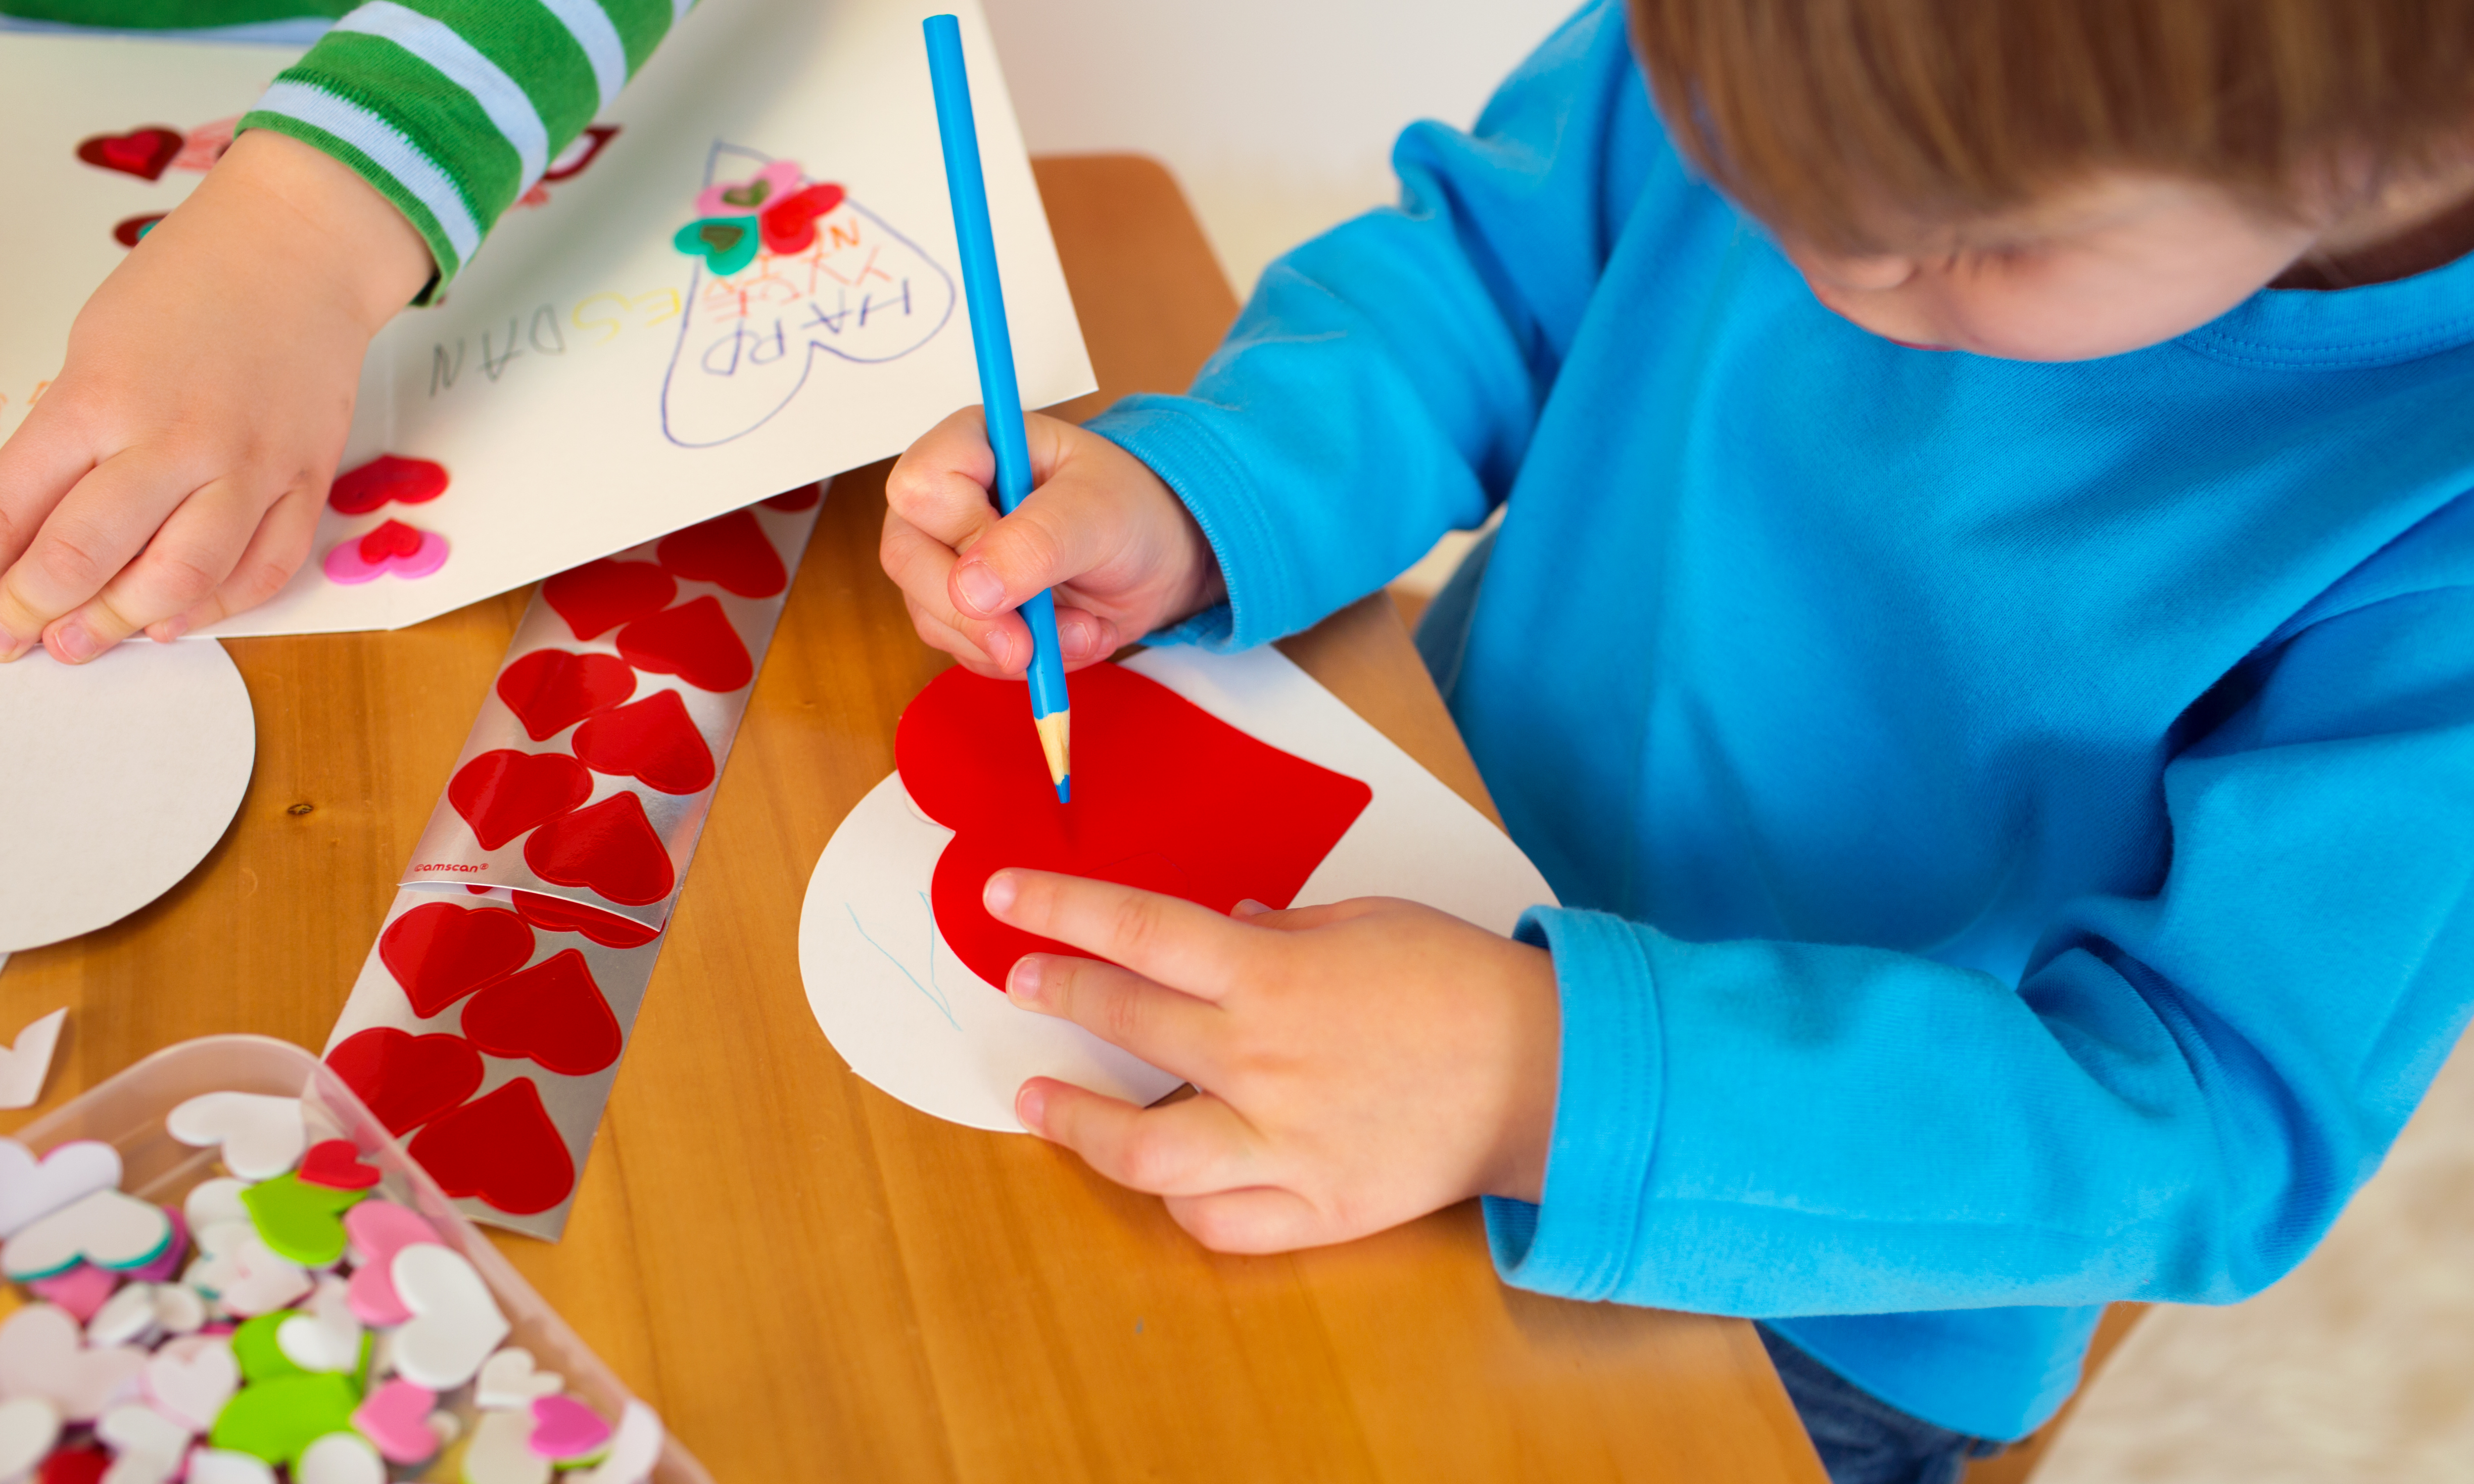 A child holding a blue colored pencil and a paper heart.